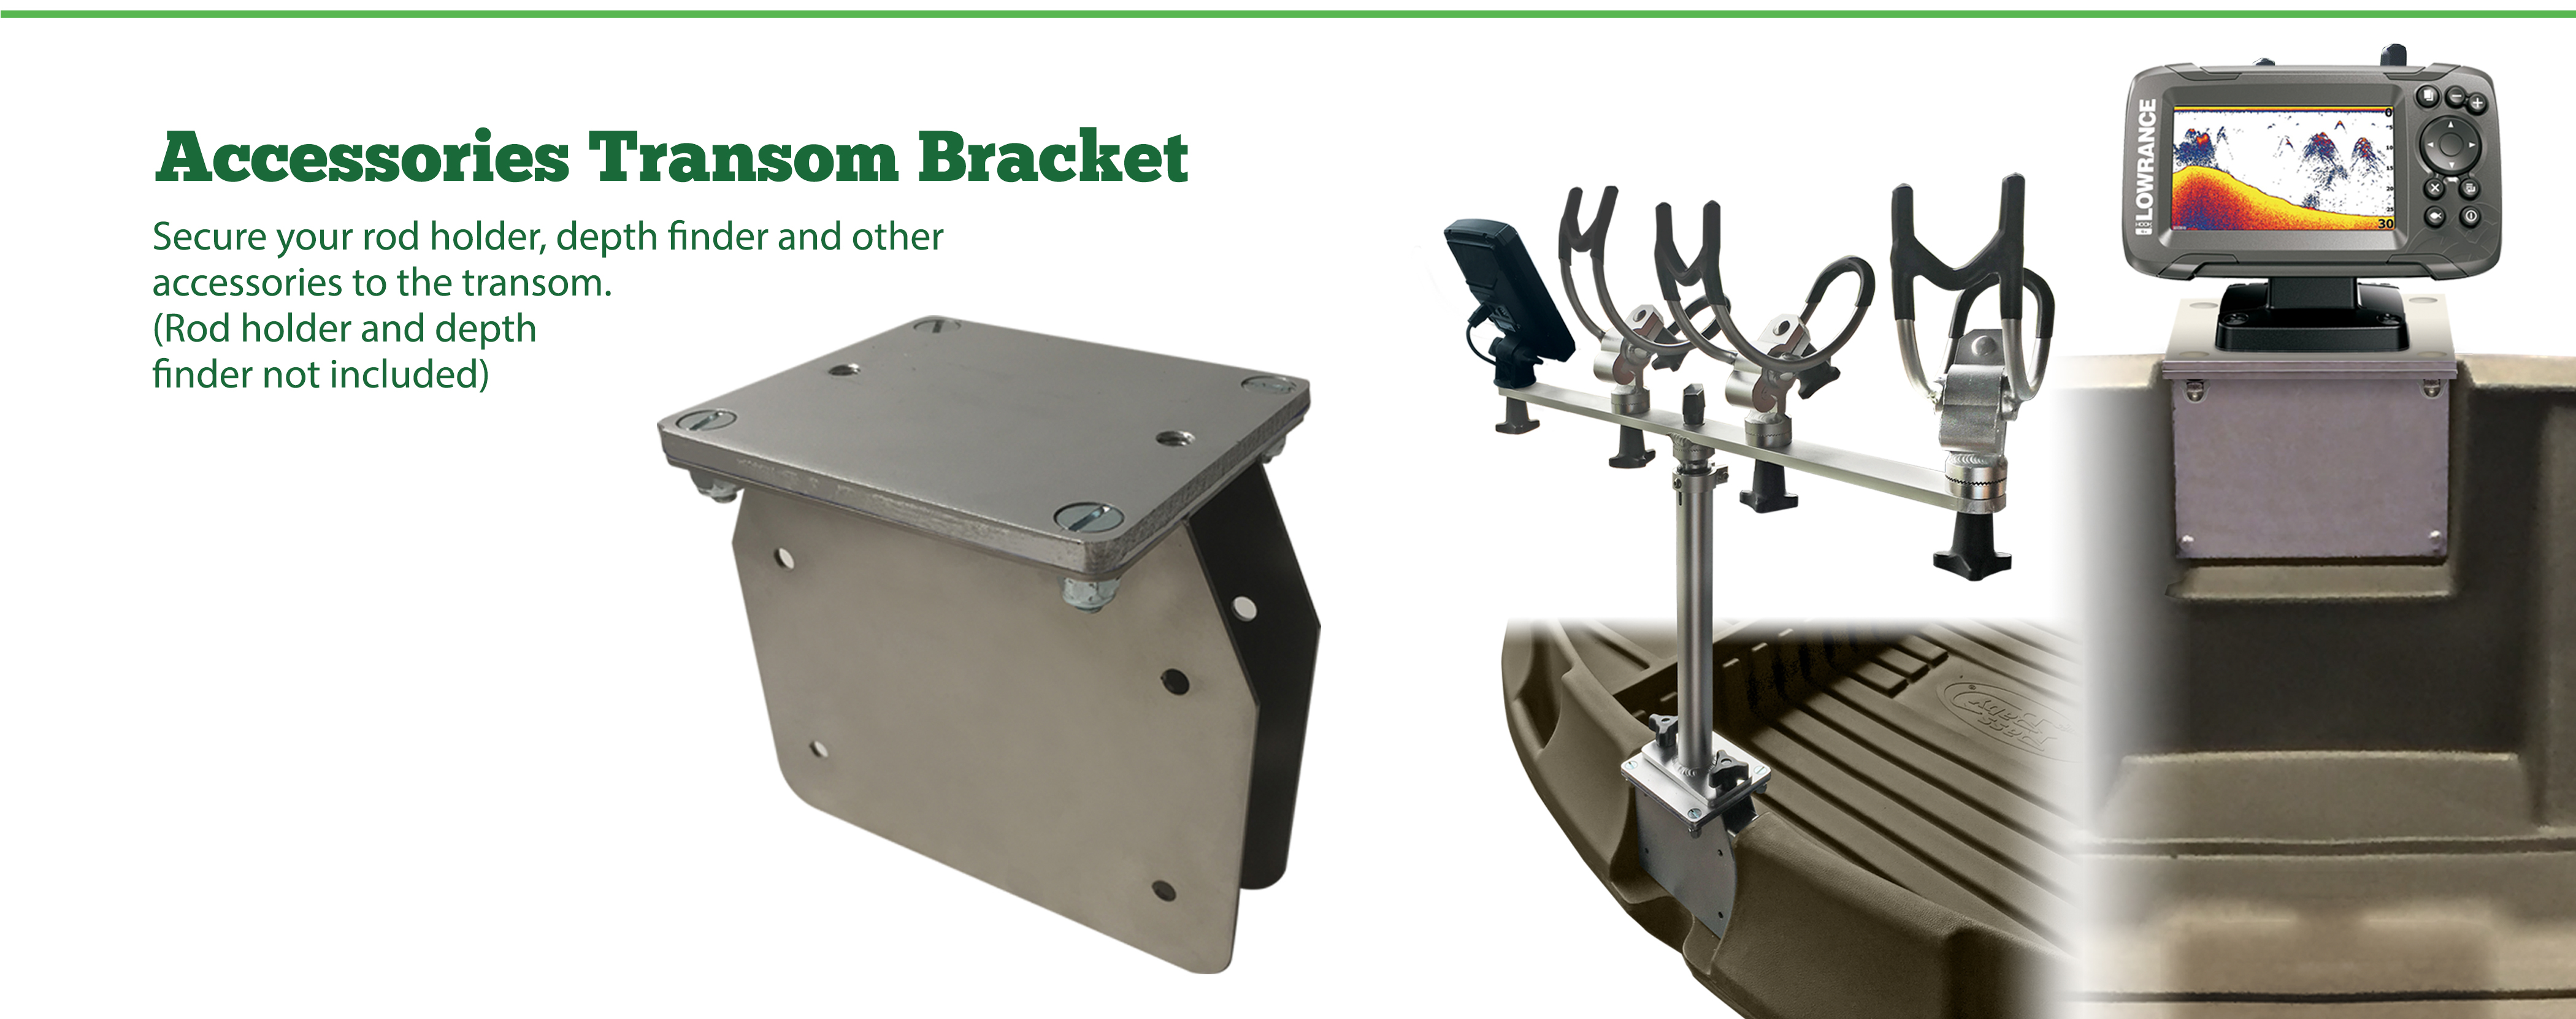 Accessories Transom Bracket